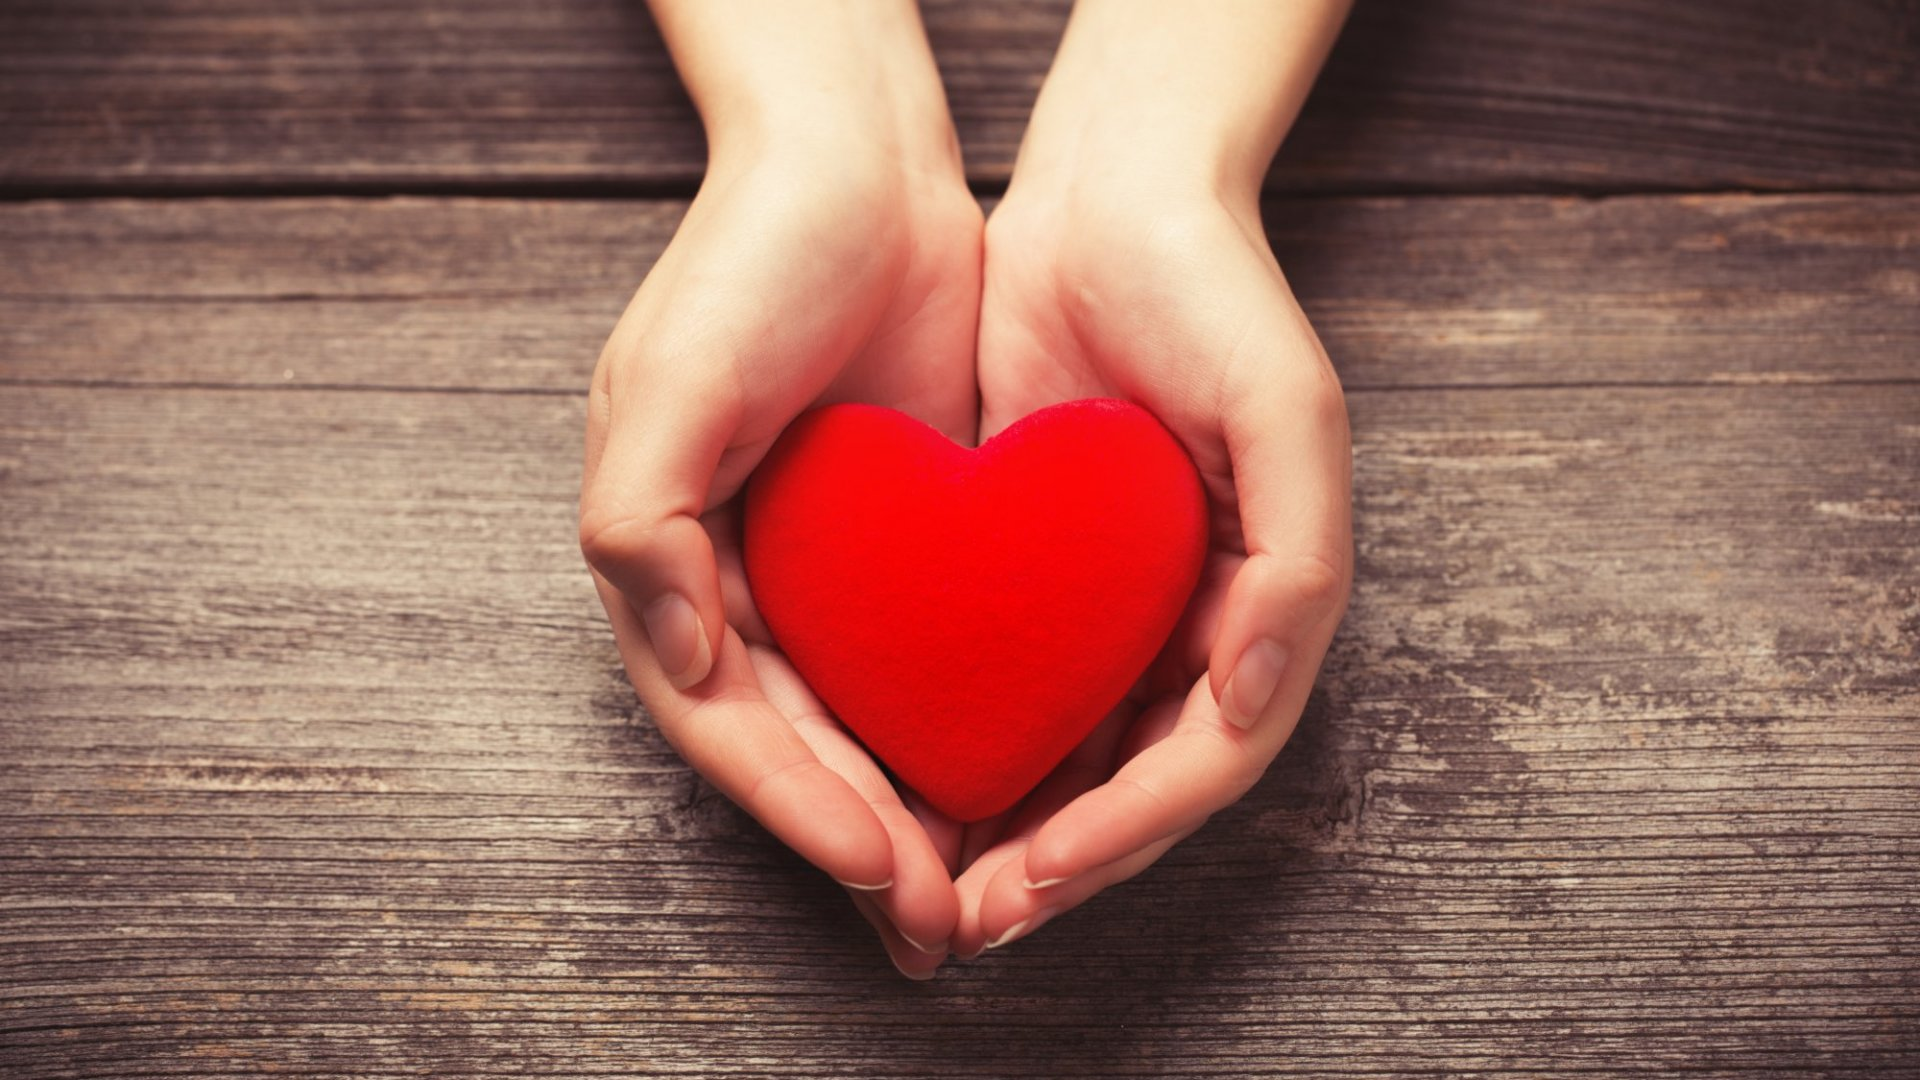 8 Powerful Ways to Lead From the Heart